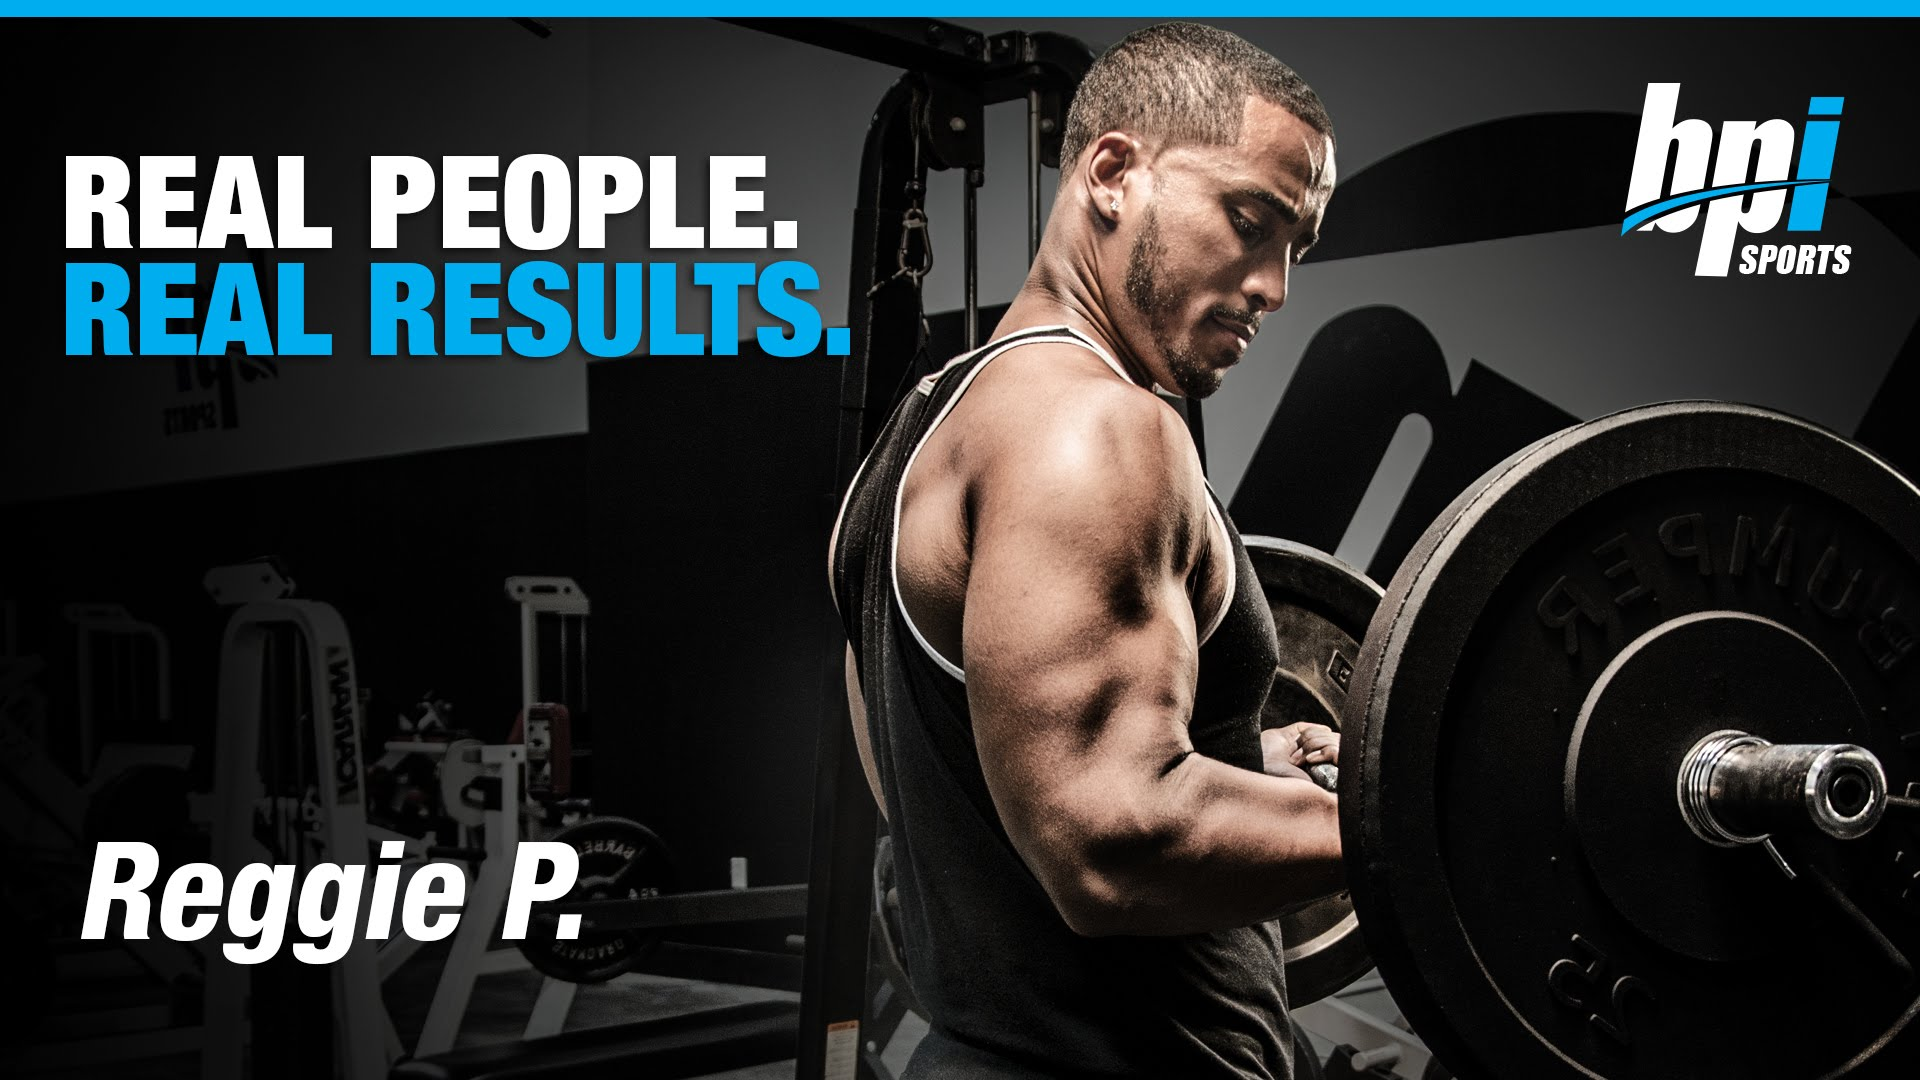 Real-People-Real-Results-with-Reggie-BPI-Sports